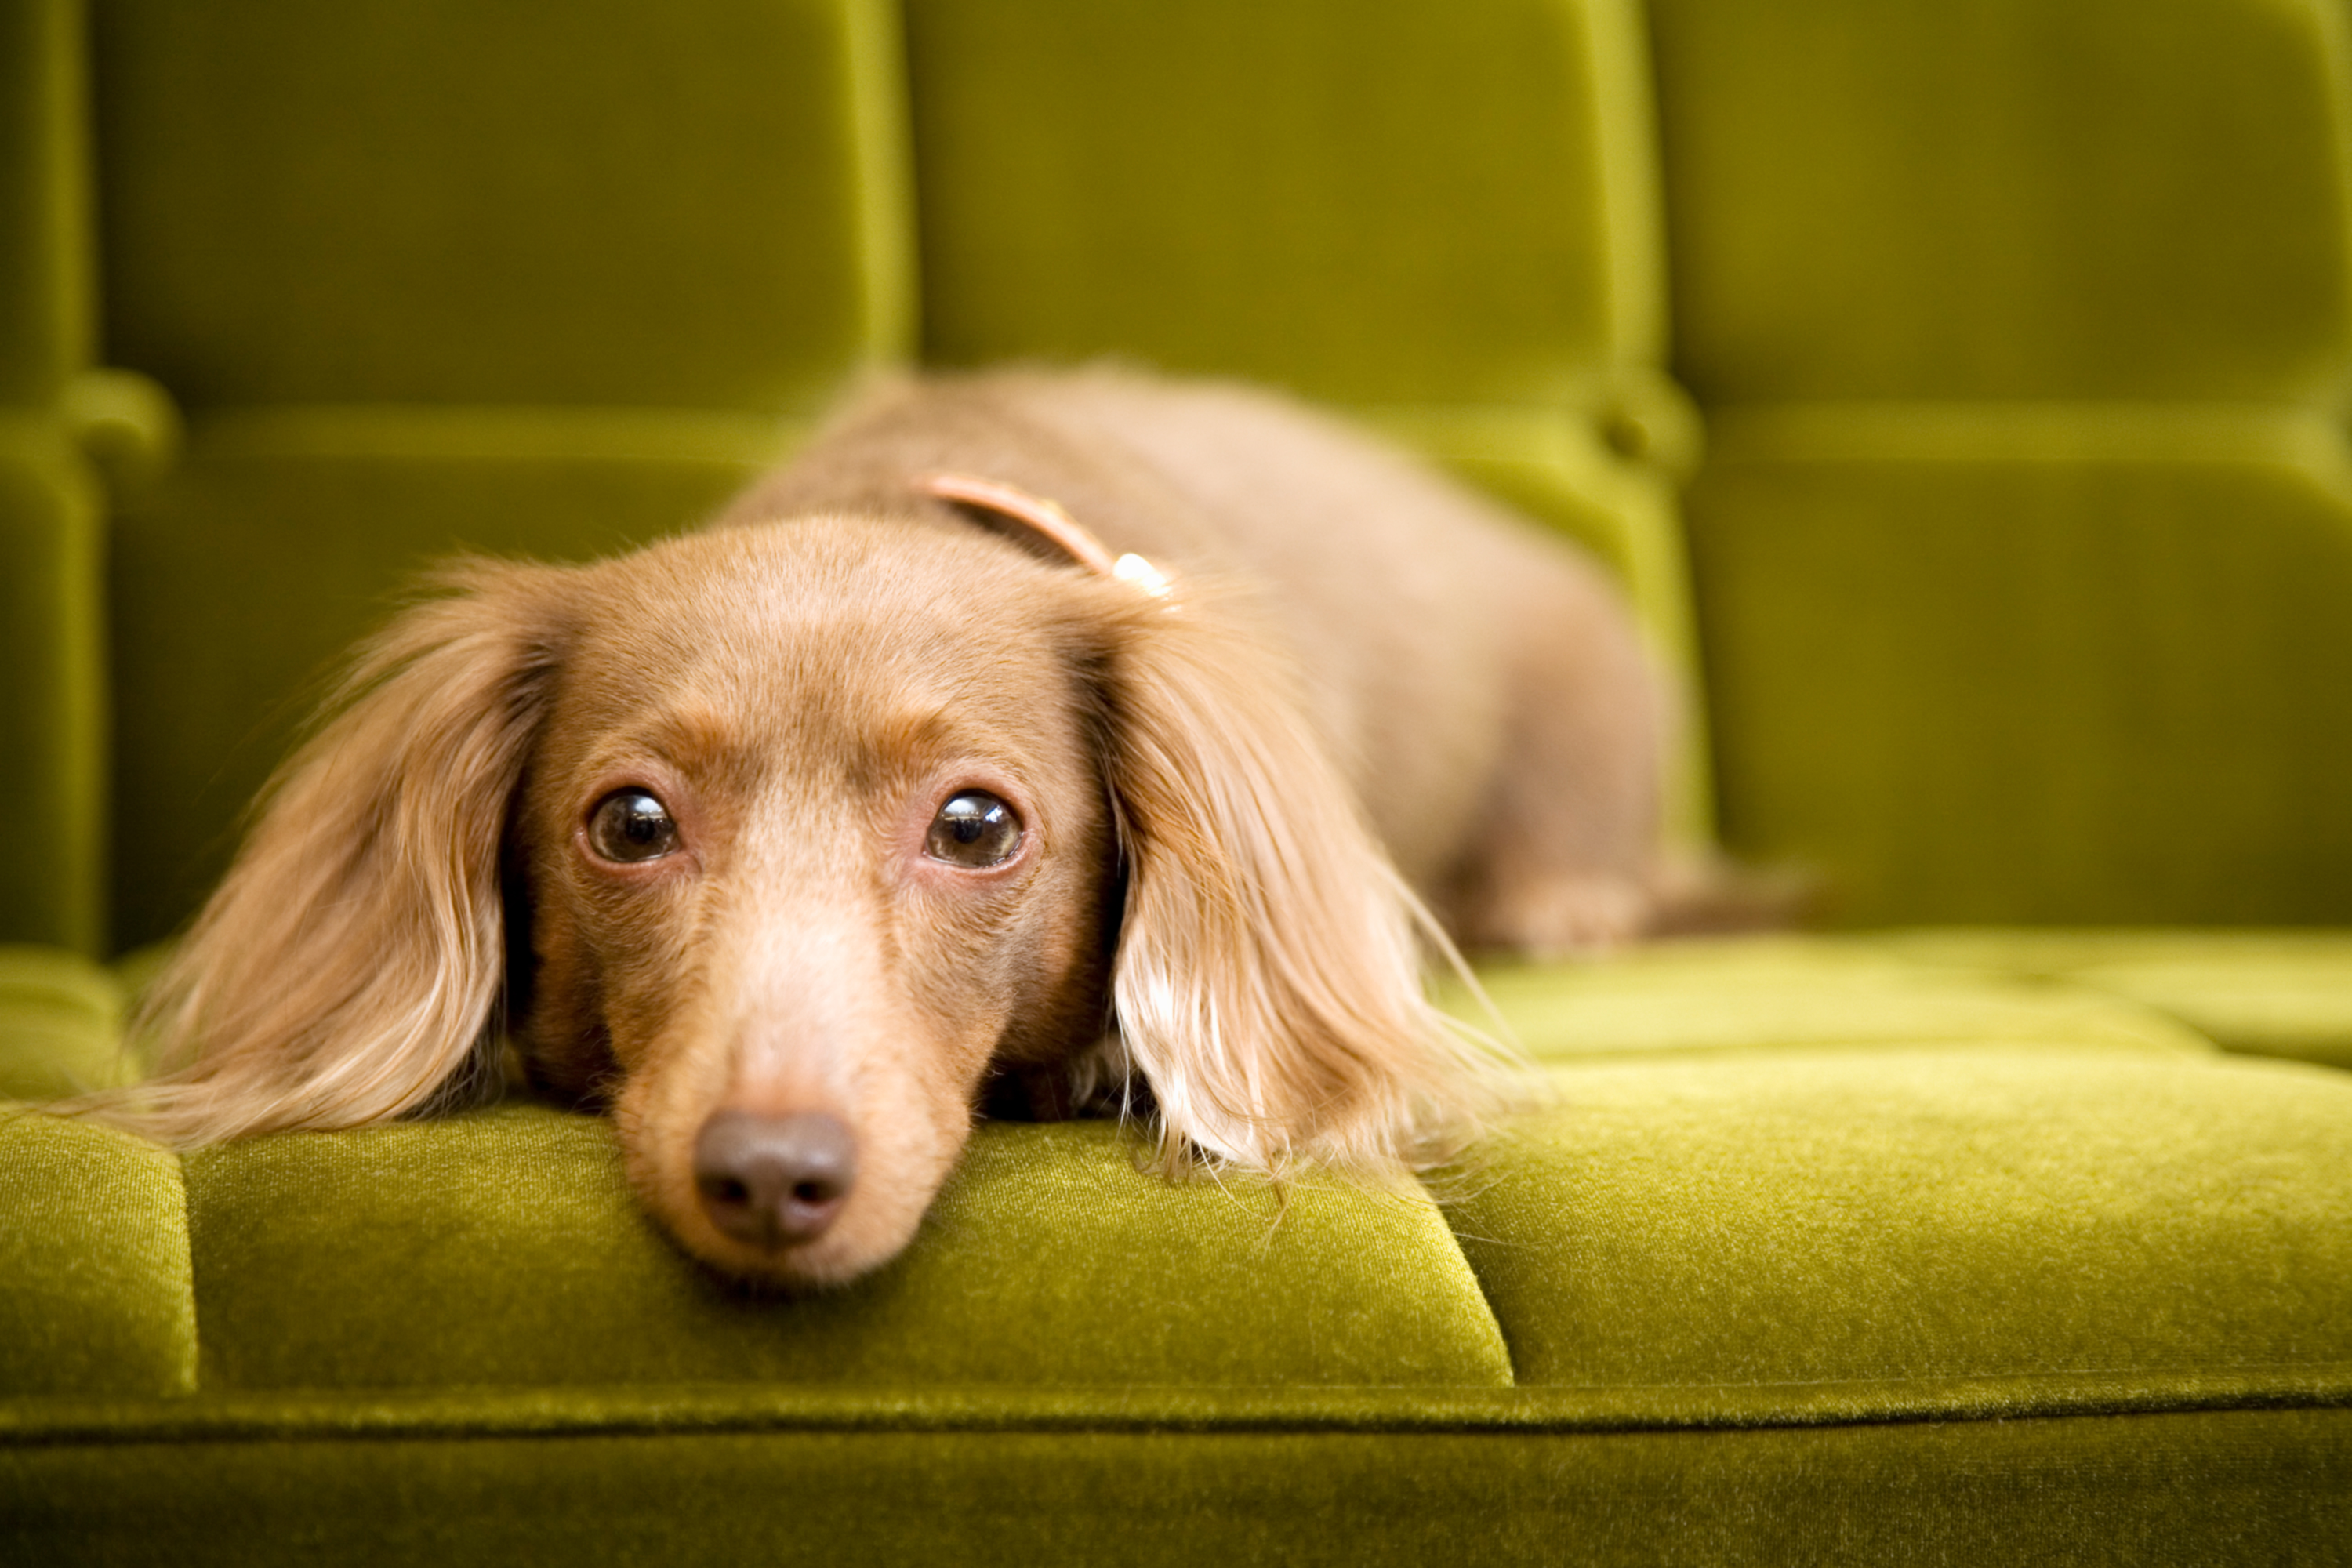 dachshund dog laying on green couch